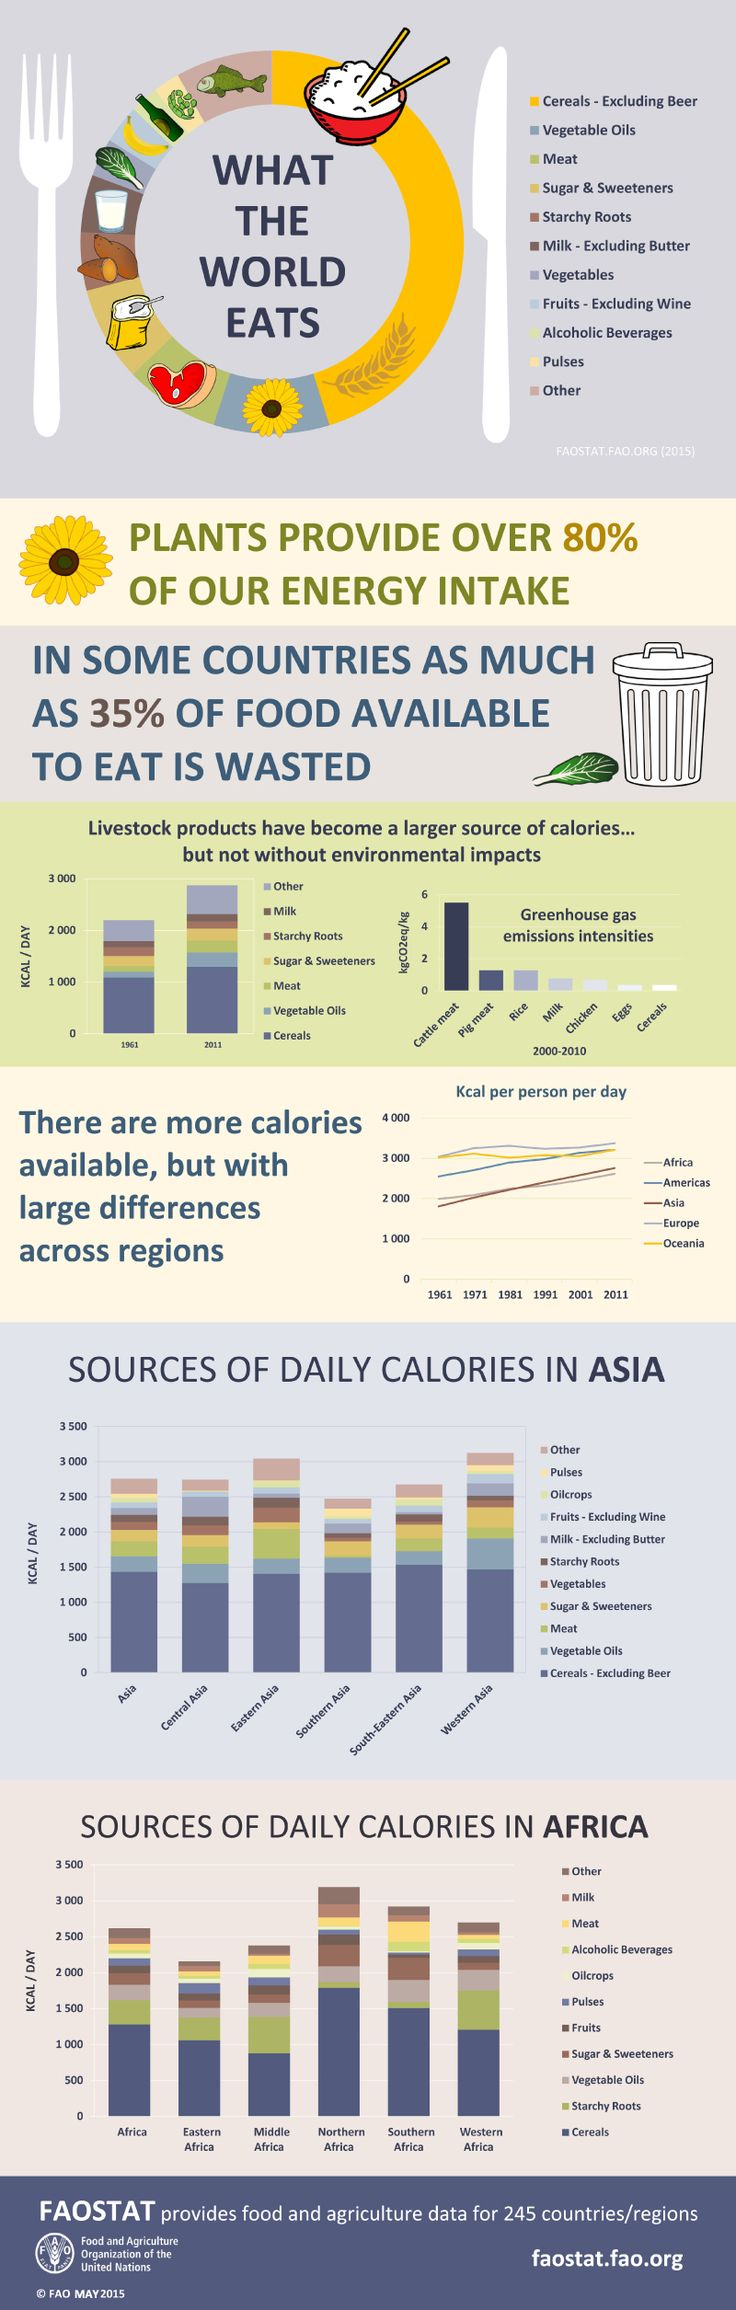 What the World Eats: daily sources of calories in different parts of the world.